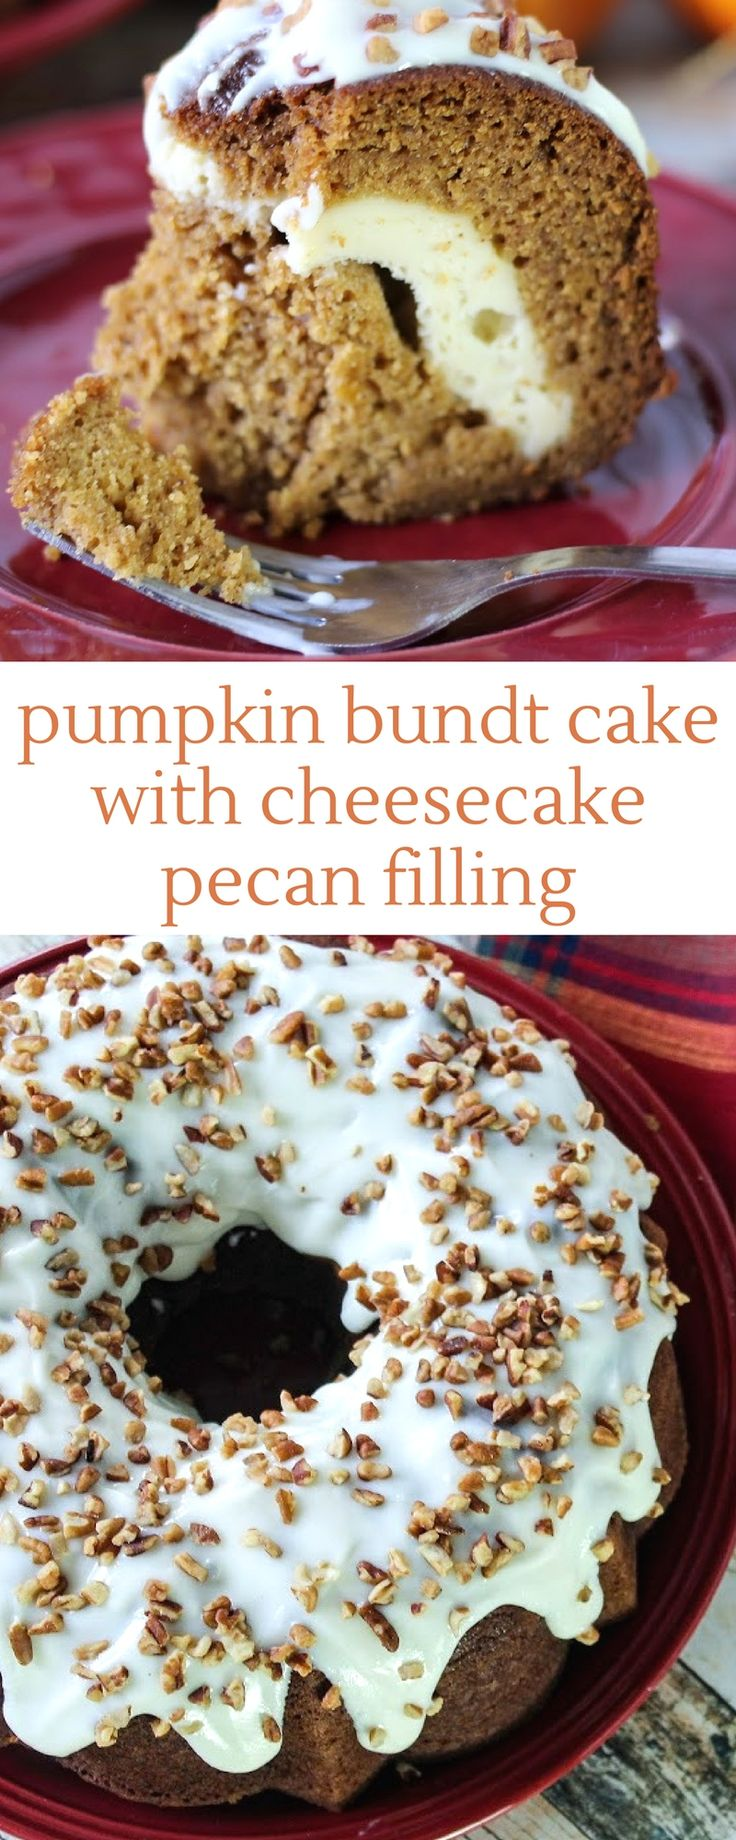 Super moist, the cake has all the fall spices and smells amazing as it bakes. #pumpkinrecipes